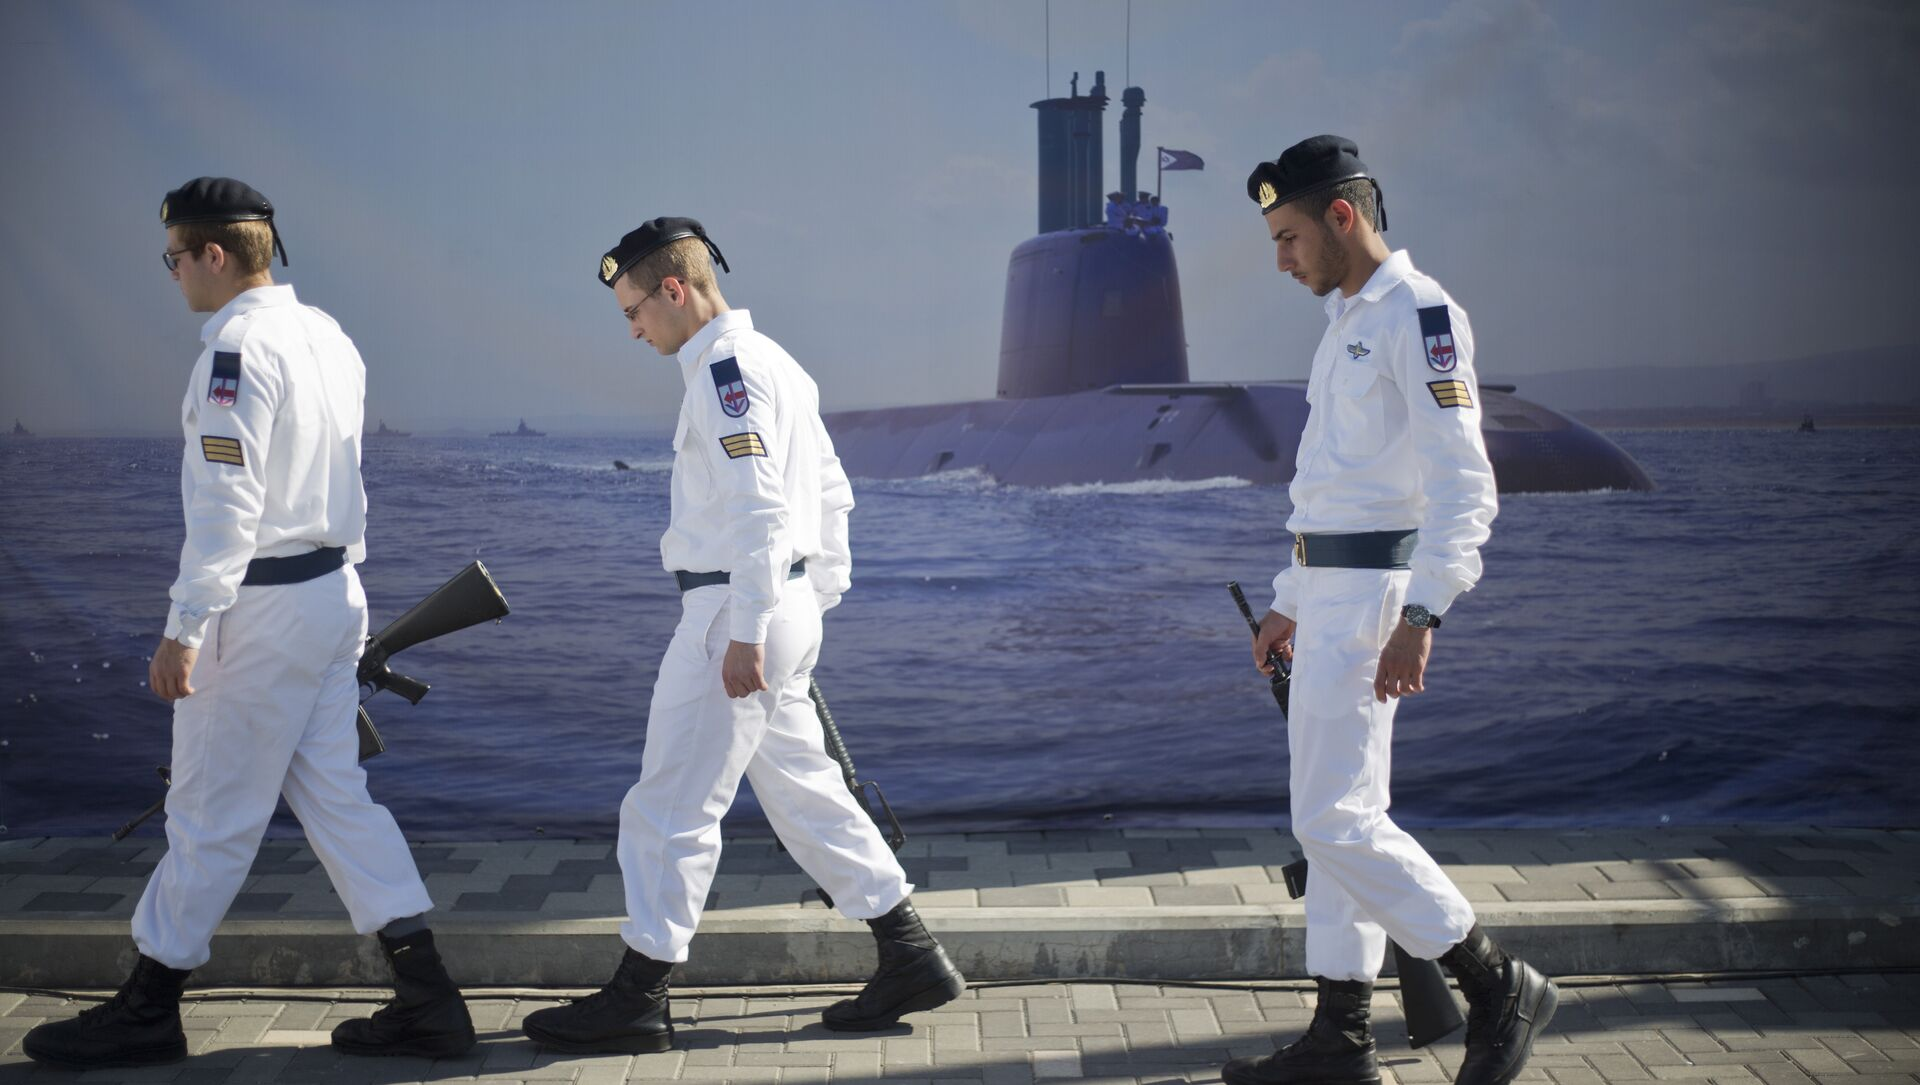 Israeli naval soldiers honor guard walks past a poster of a submarine as they wait for the arrival of a new navy submarine Rahav in the military port in Haifa, Israel, Tuesday, Jan. 12, 2016. - Sputnik International, 1920, 01.08.2021